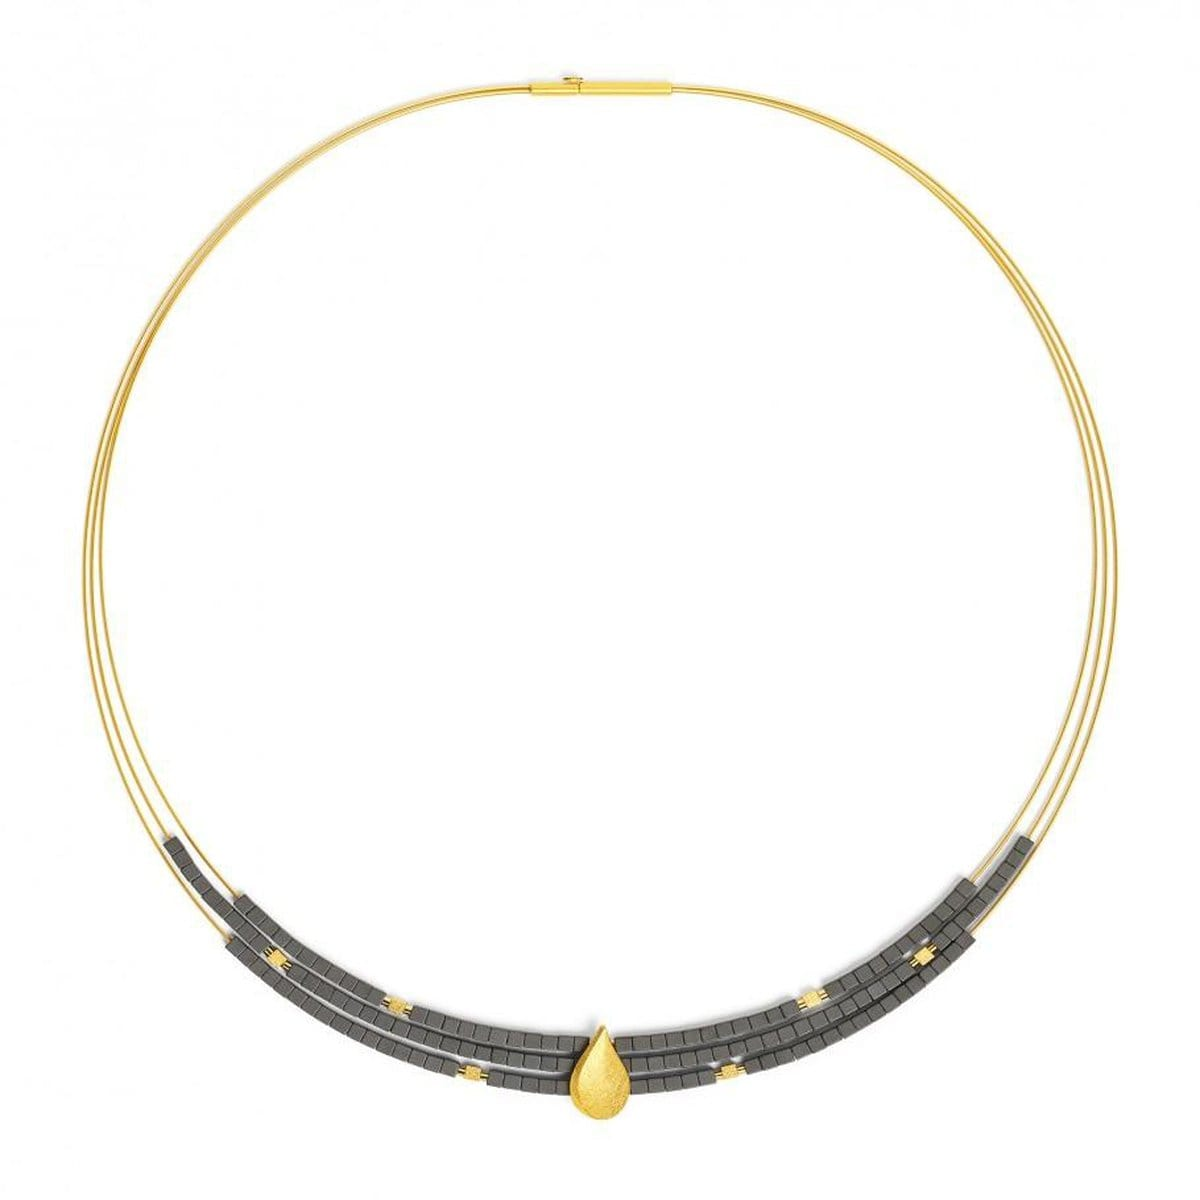 Aquinsa Hematine Necklace - 84122276